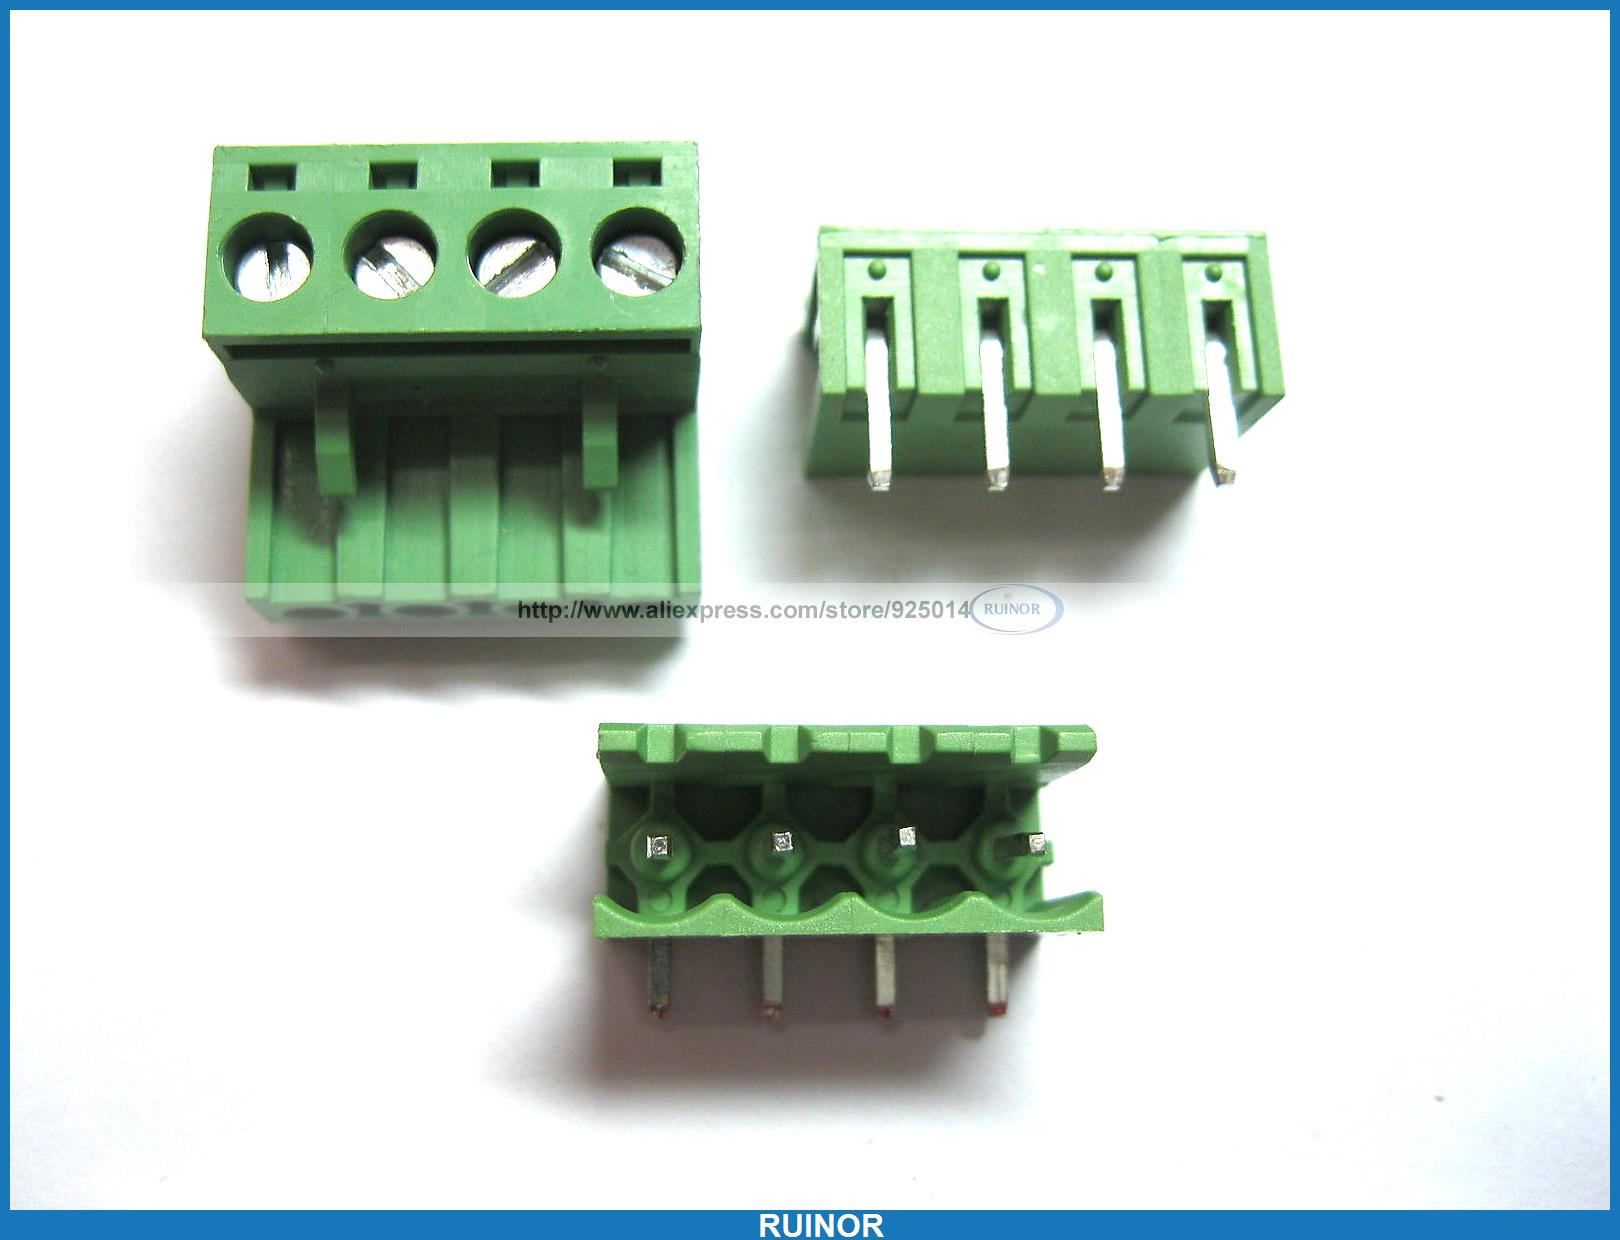 50 Pcs 5 08mm Angle 4 Pin Screw Terminal Block Connector Pluggable Type Green сандалии betsy 977784 01 01 черный р 37 ru